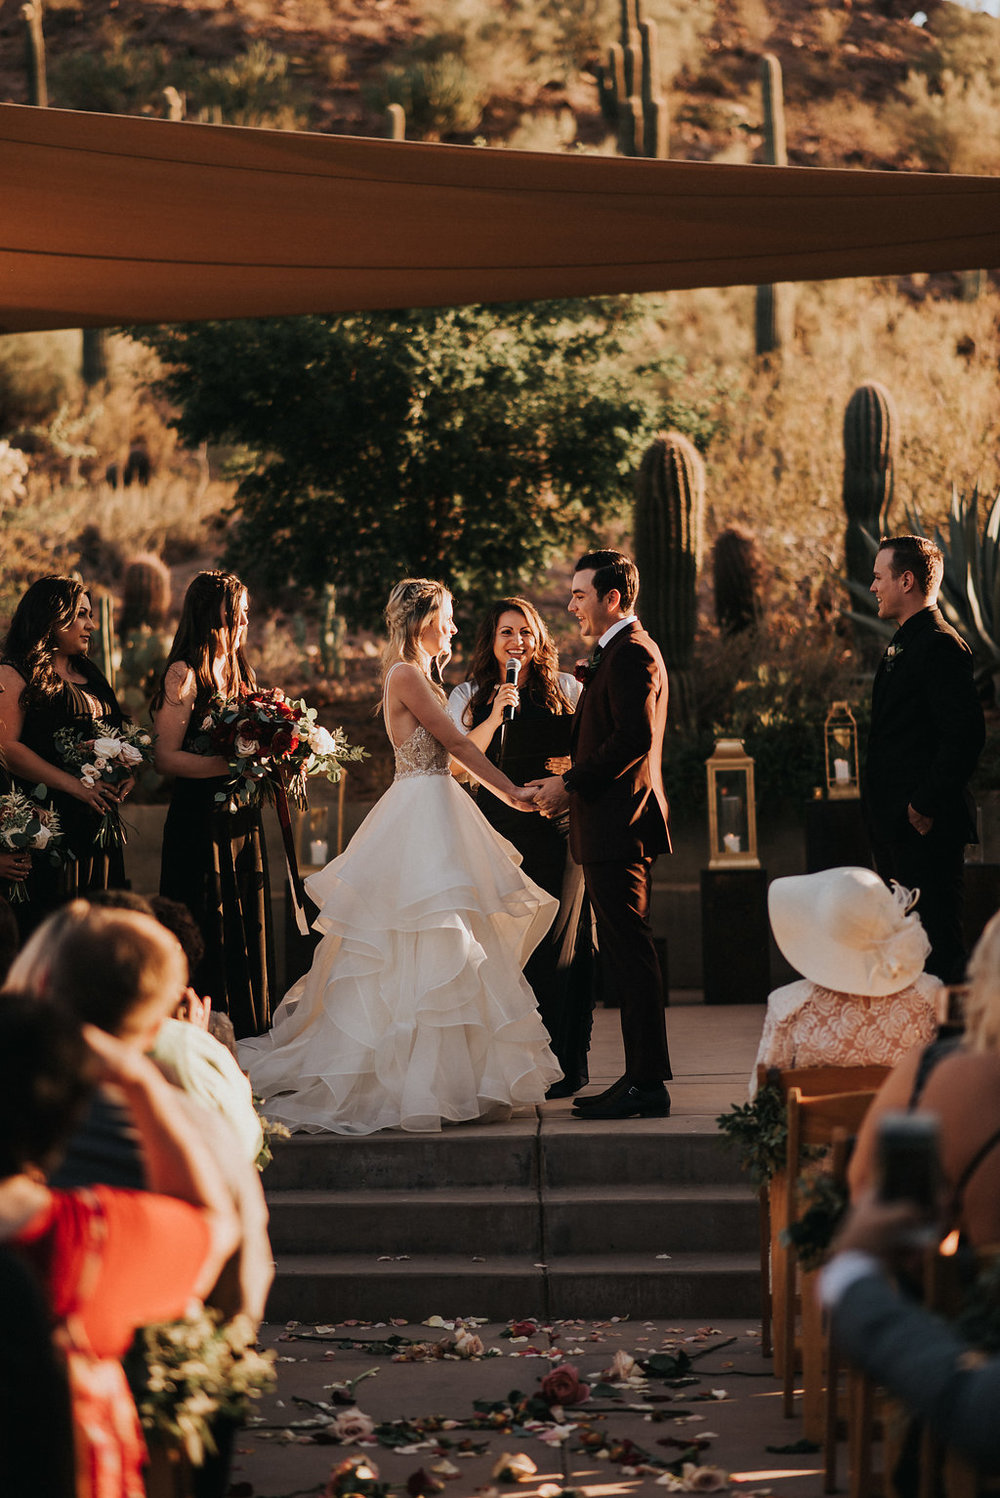 A Colorful Arizona Sunset Wedding at the Desert Botanical Gardens - Tremaine Ranch Arizona Wedding Event Vintage Furniture Tableware Specialty Rentals with Jonnie and Garrett27.jpg